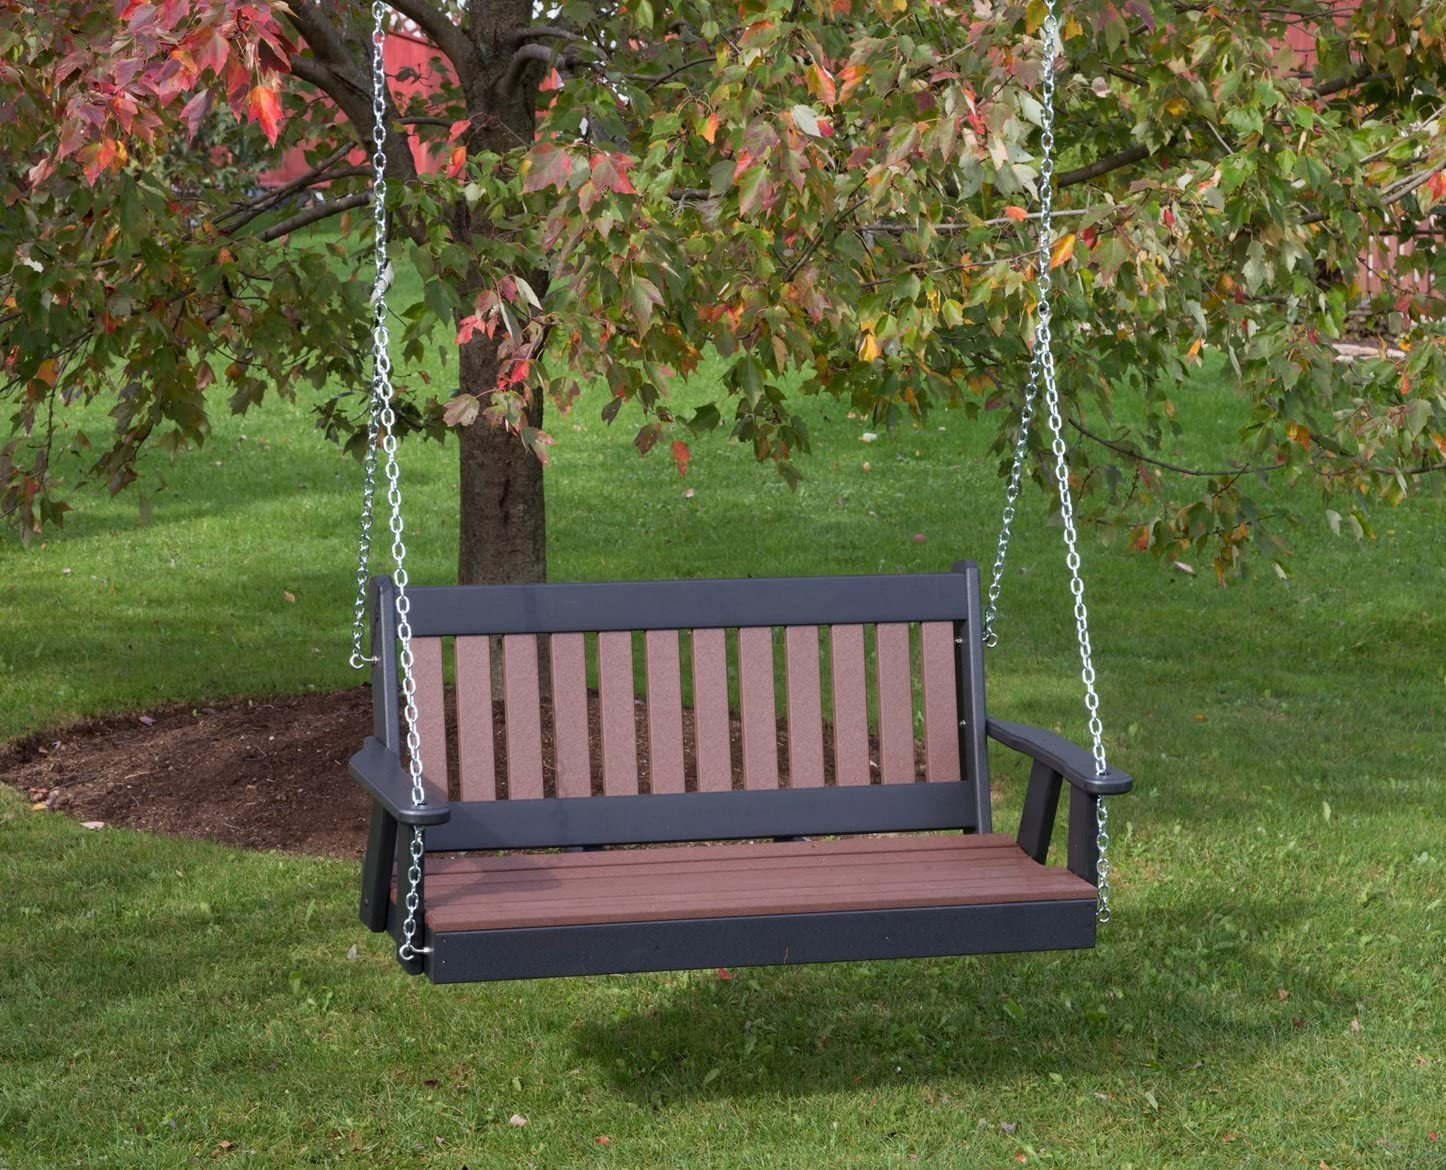 Ecommersify Inc 5FT-Cedar-Poly Lumber Mission Porch Swing Heavy Duty Everlasting PolyTuf HDPE